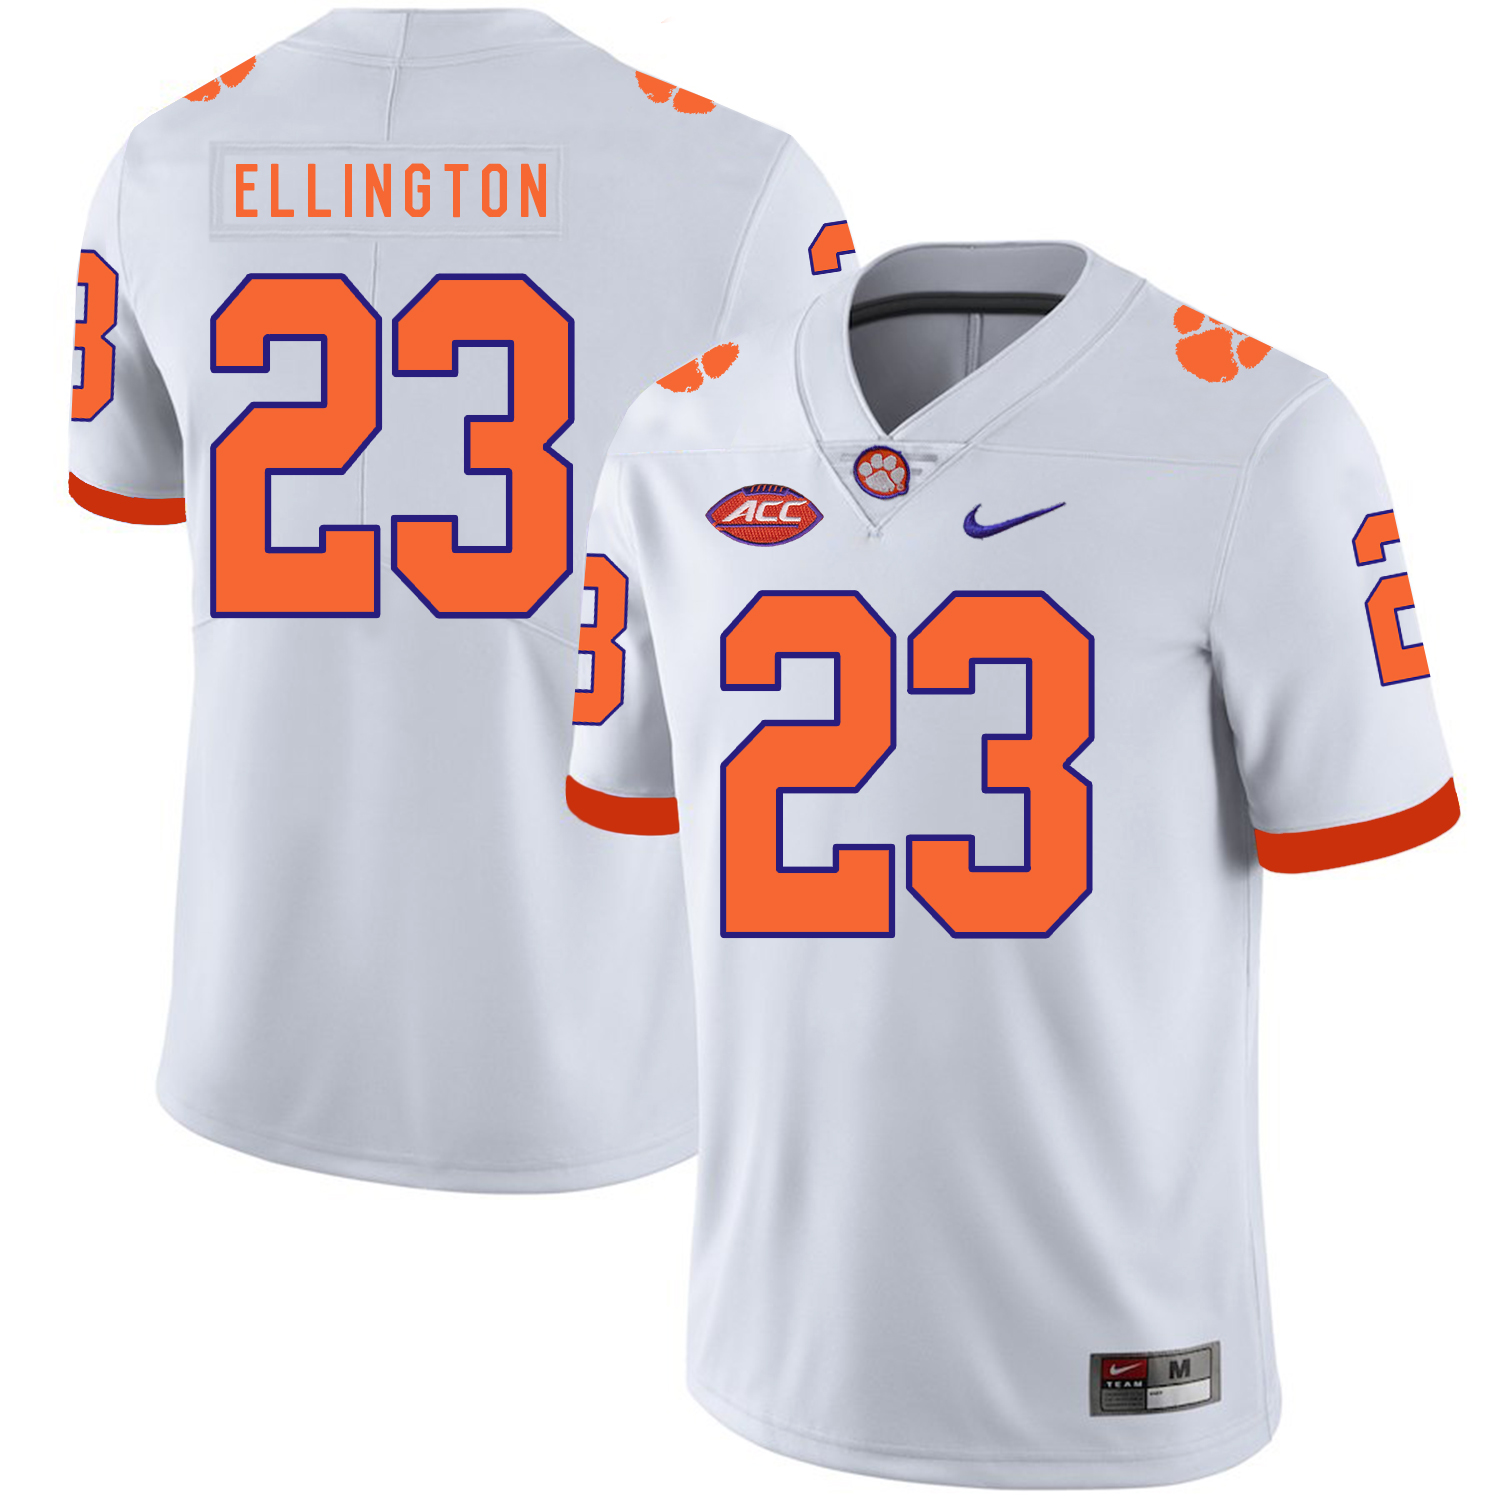 Clemson Tigers 23 Andre Ellington White Nike College Football Jersey